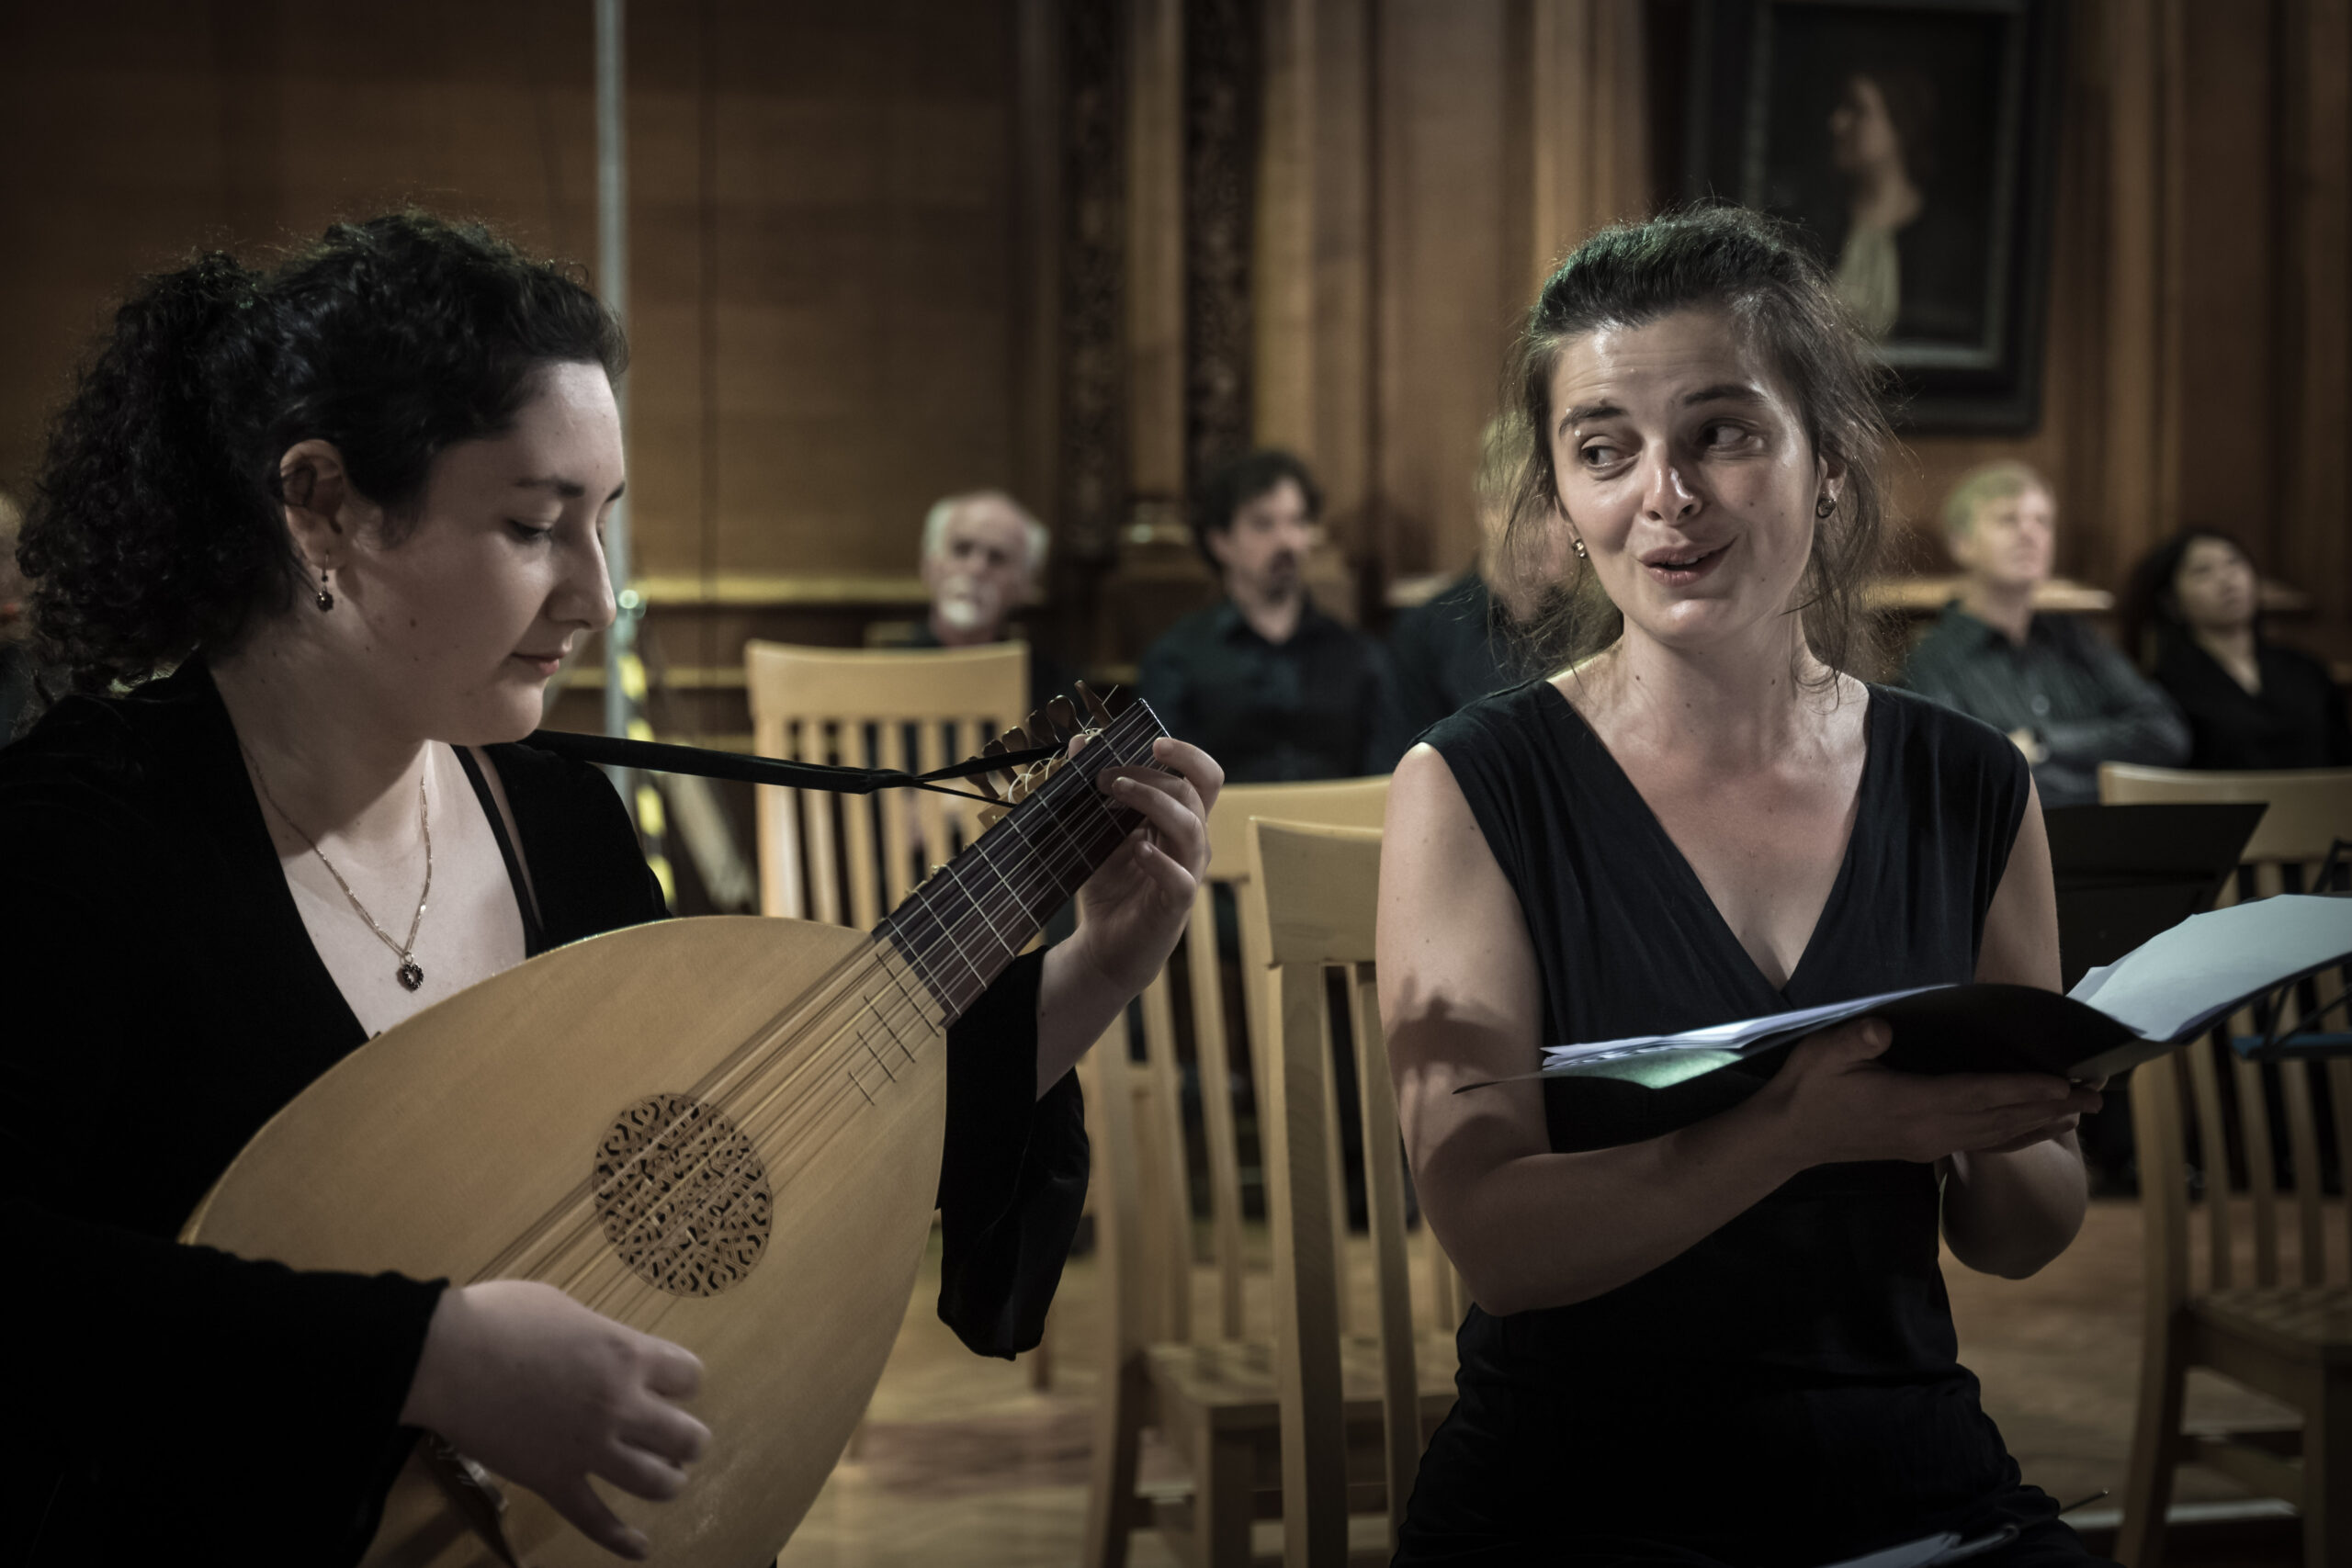 Lute and singer at Renaissance Summer School in Cambridge